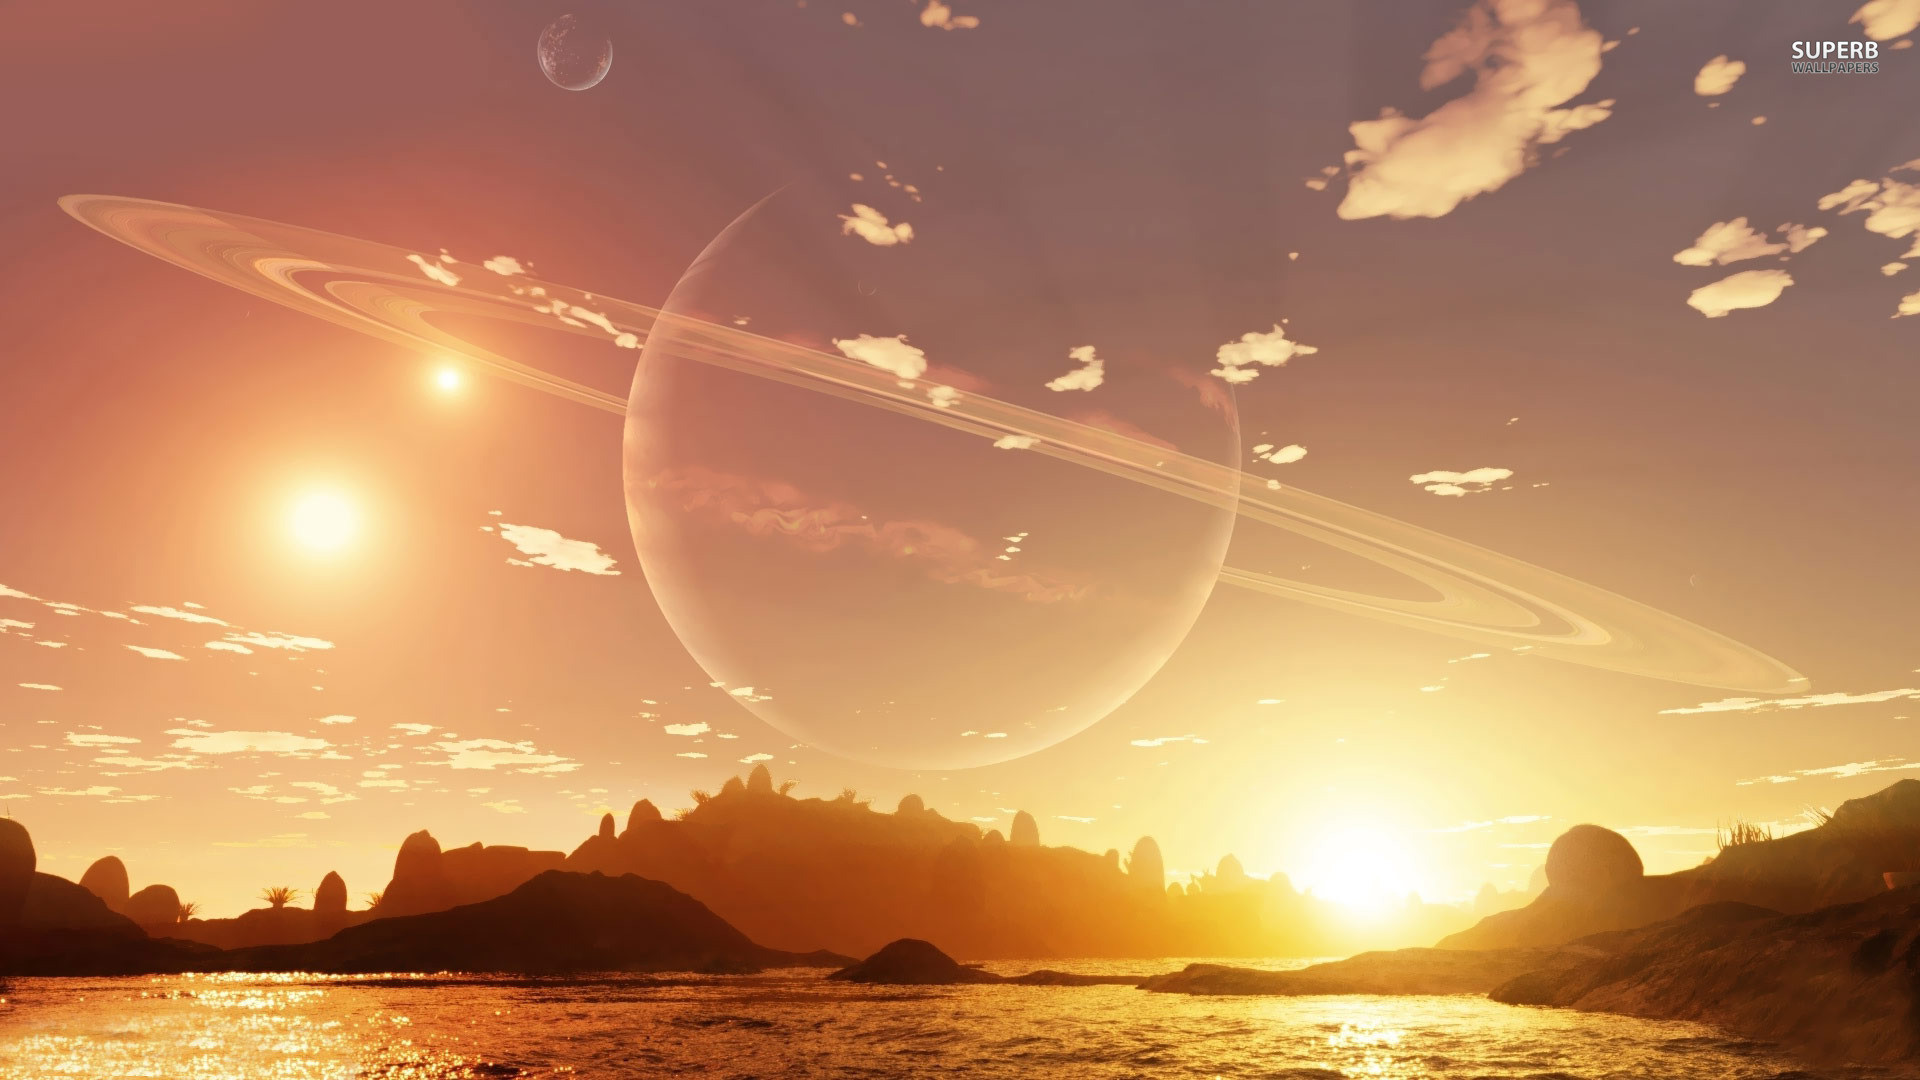 Planet in the sky during the day wallpaper – Fantasy wallpapers .